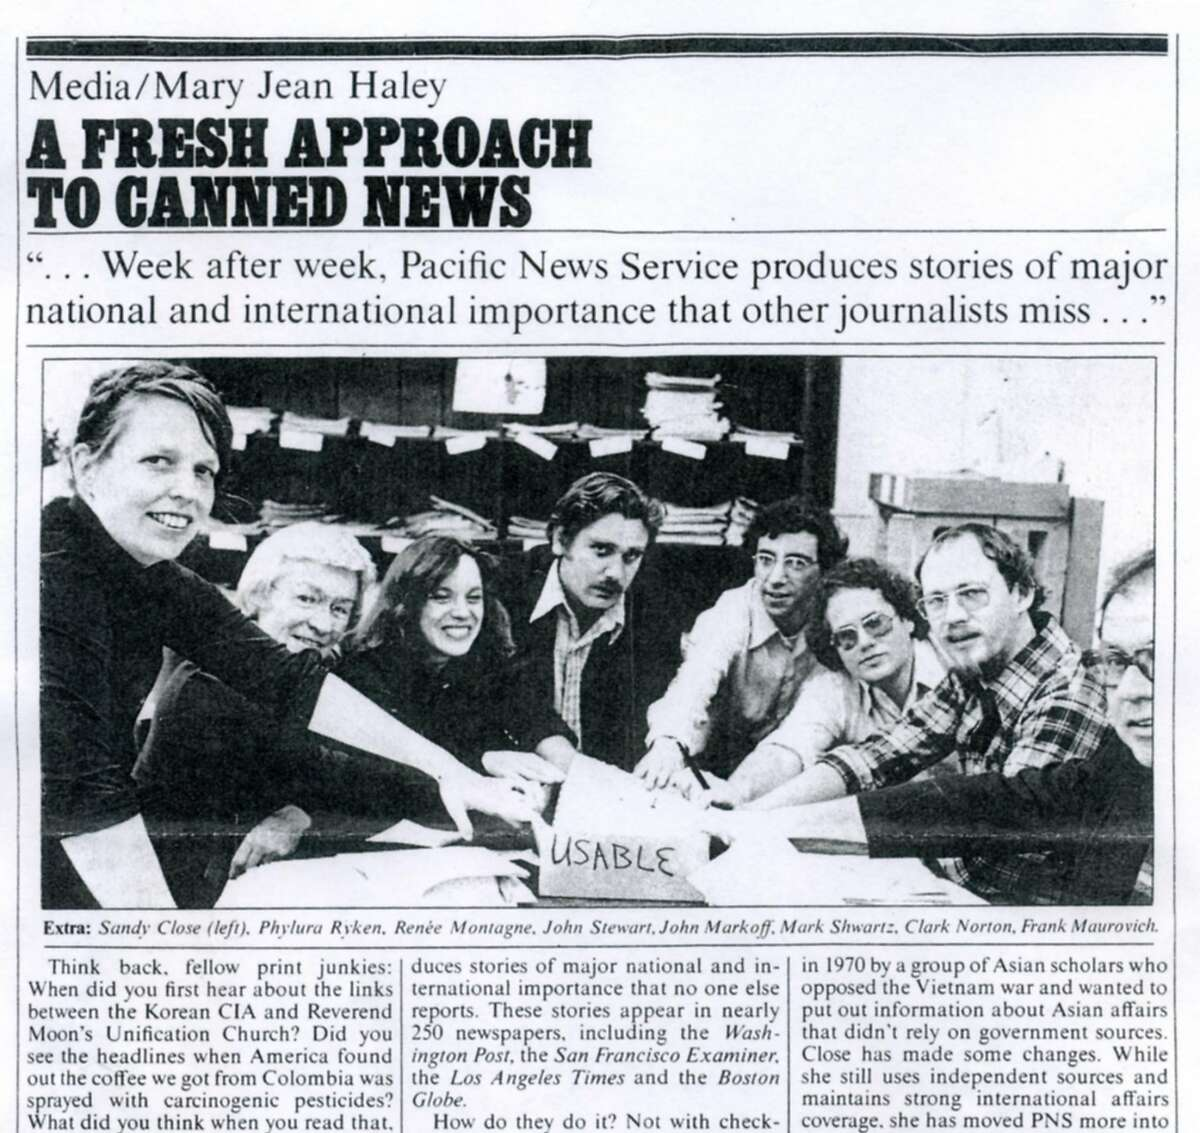 A 1978 profile of Pacific News Service in the magazine New West